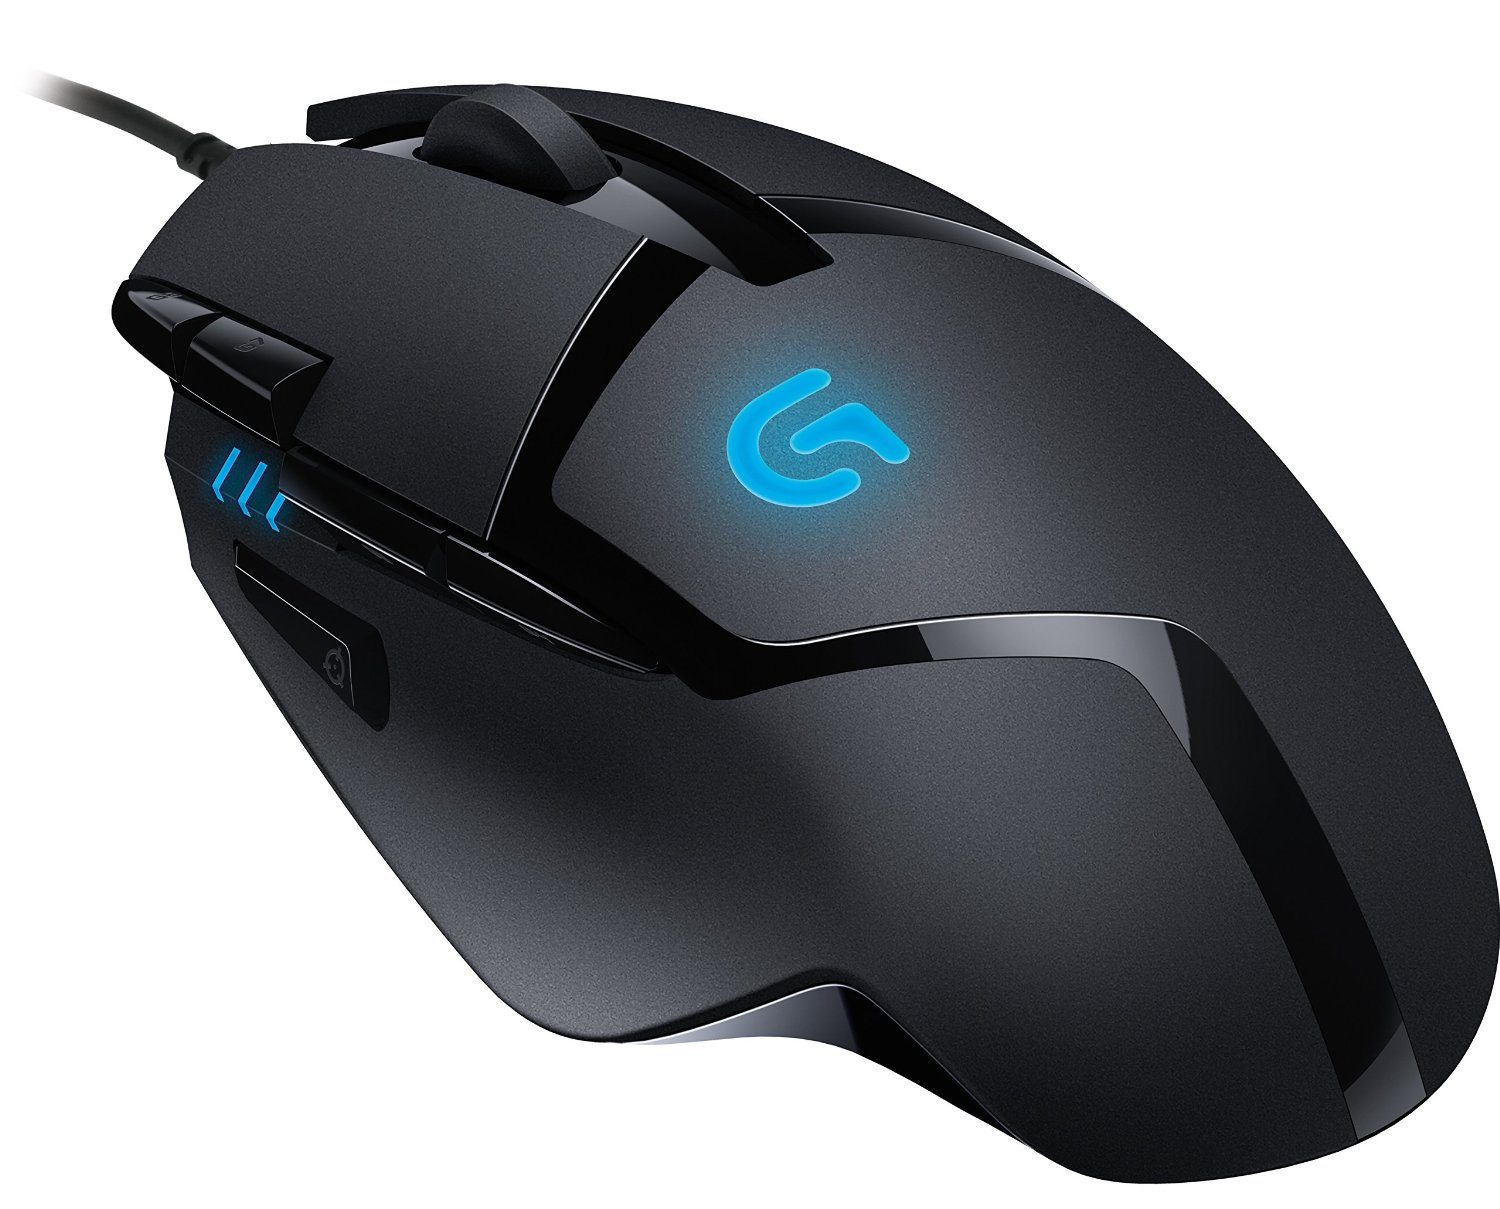 Logitech G402 Hyperion Fury FPS Gaming Mouse met High Speed - Computerrandapparatuur - Foto 3